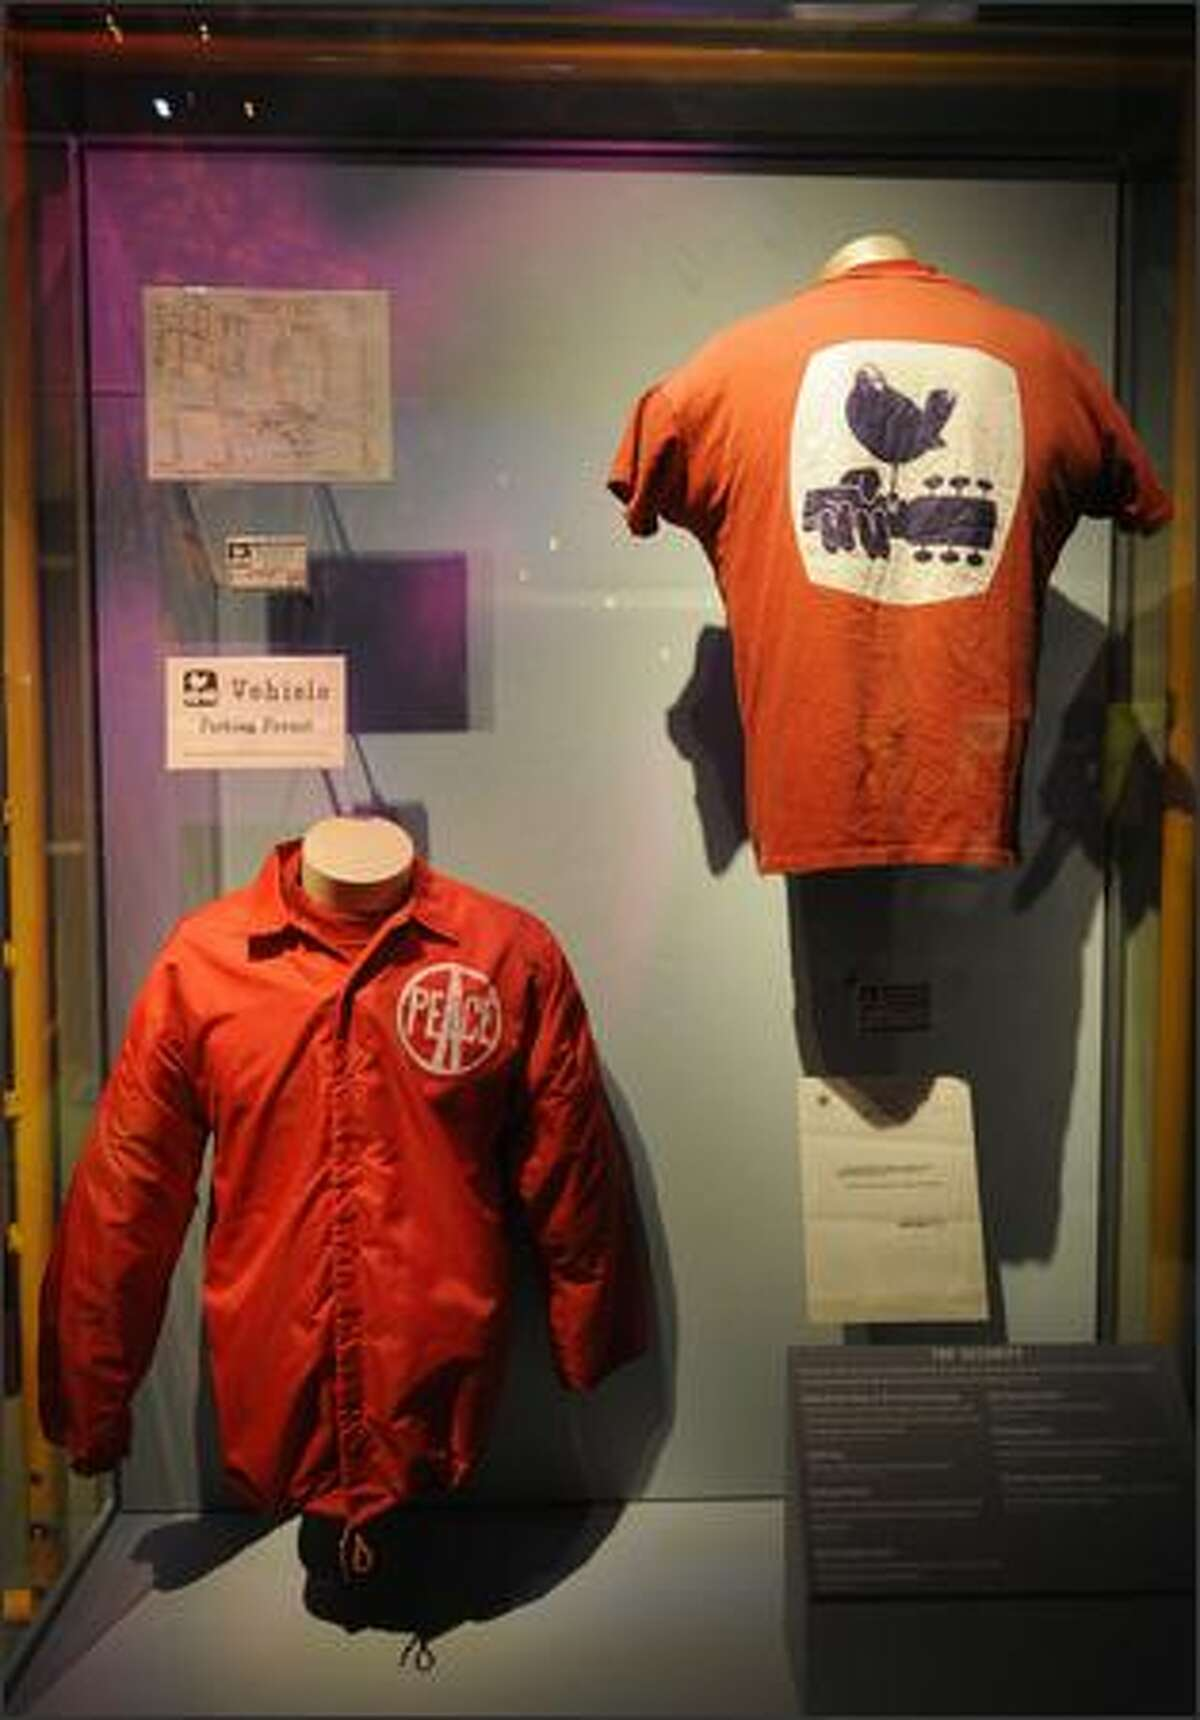 A T-shirt and a security personnel jacket from the Woodstock music festival are displayed.